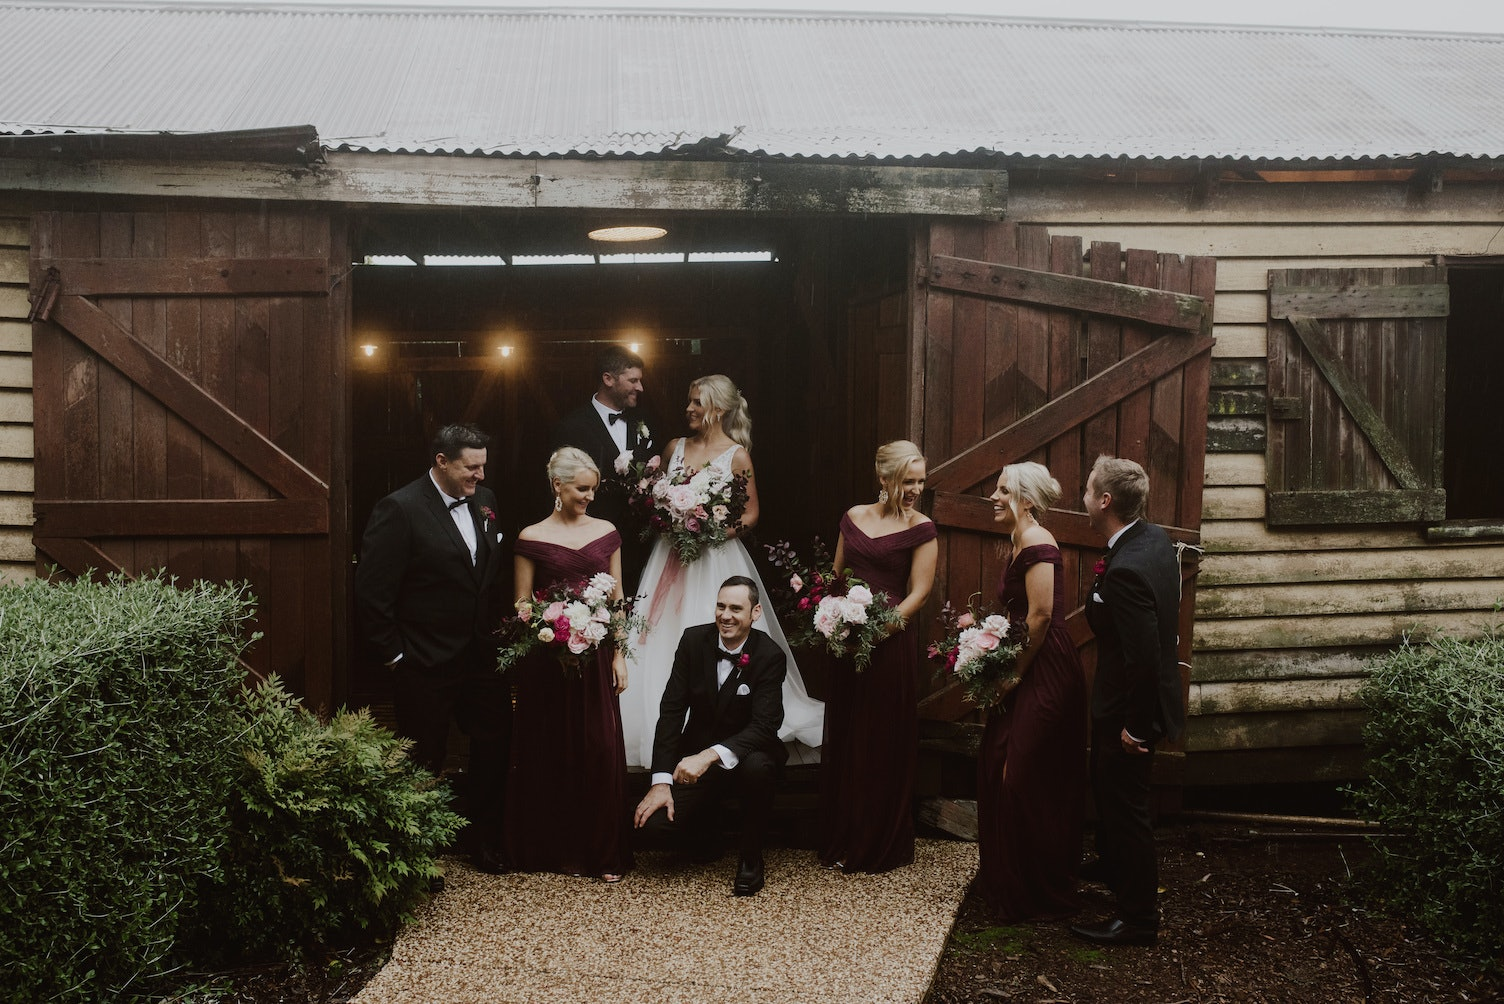 Wedding party getting photos in stable